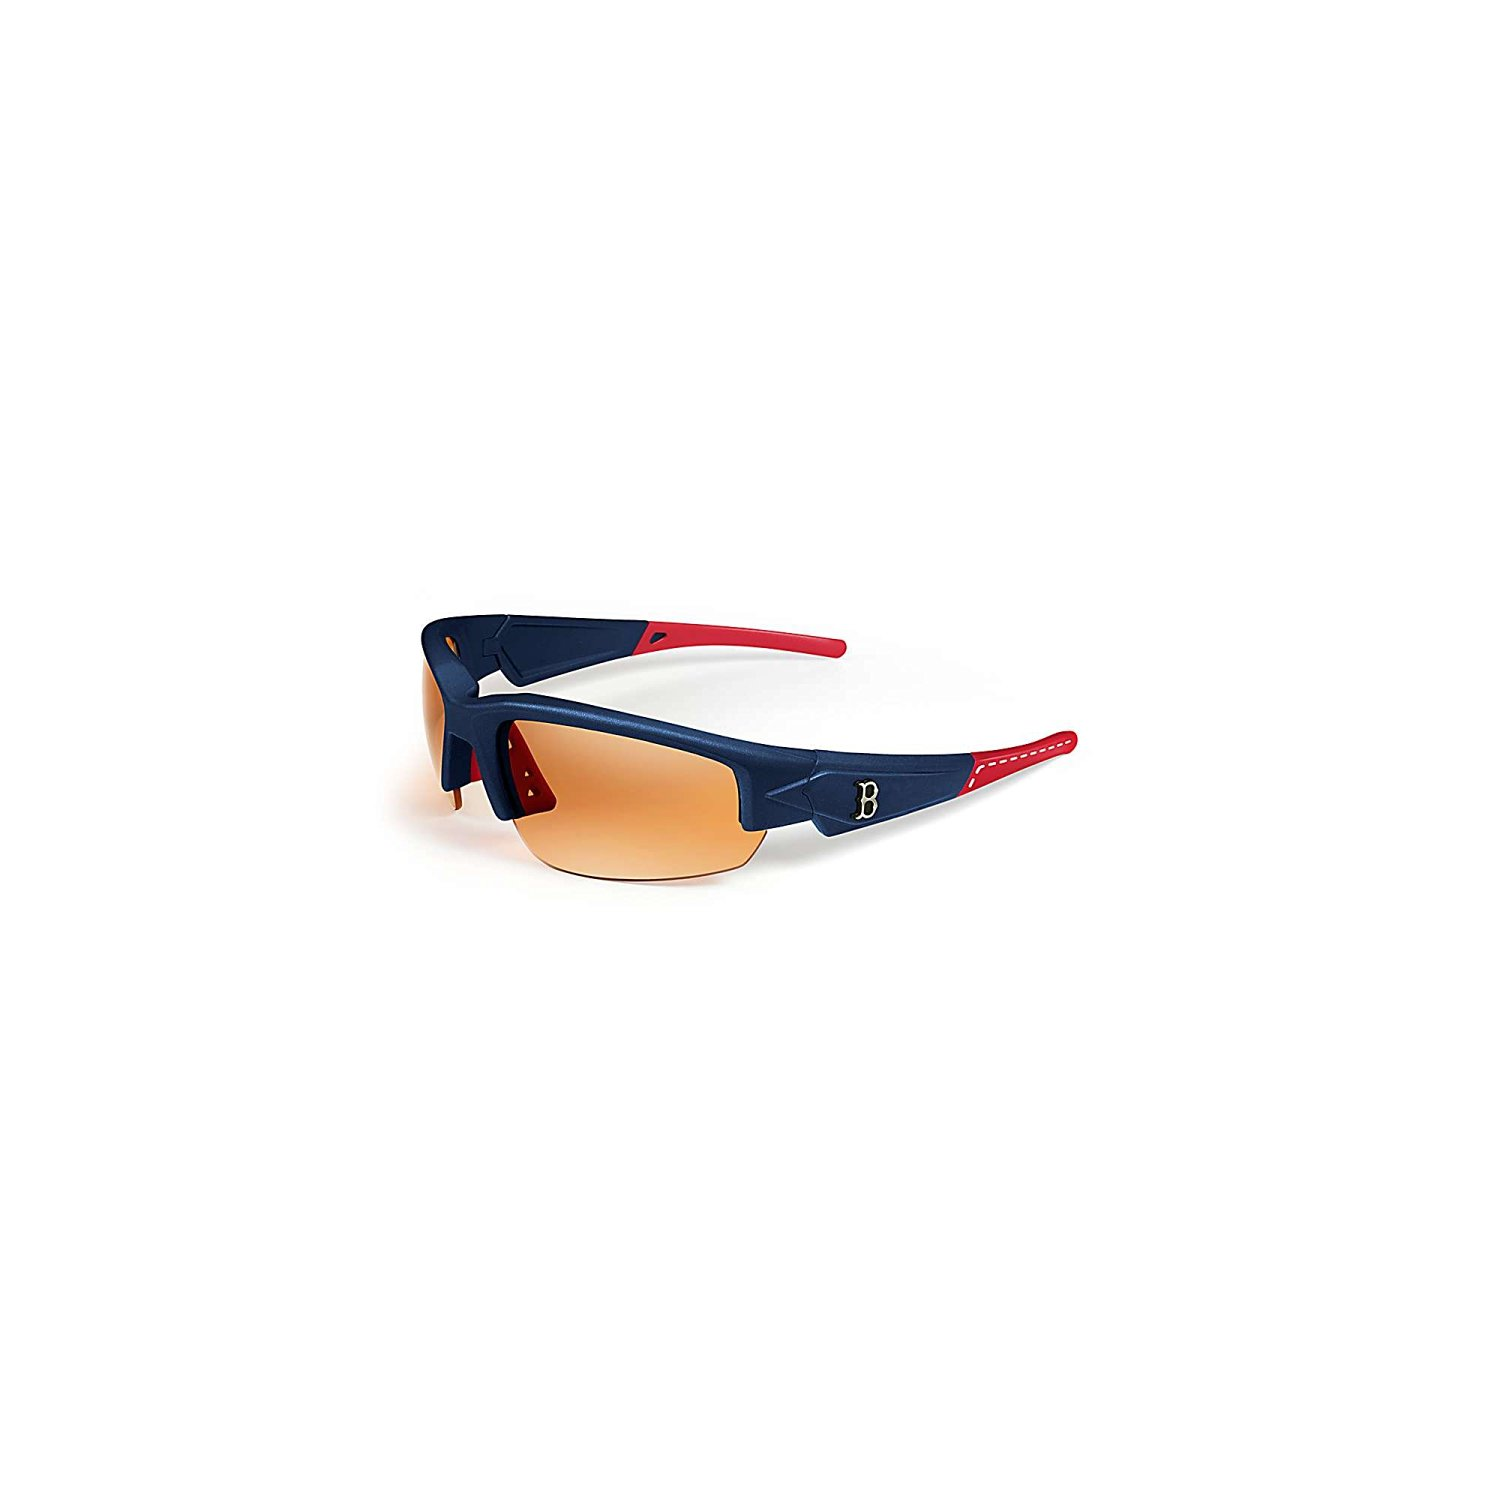 749d4791e0a Get Quotations · Maxx Sunglasses Adult Unisex Maxx MLB Boston Red Sox  Dynasty 2.0 Sunglasses